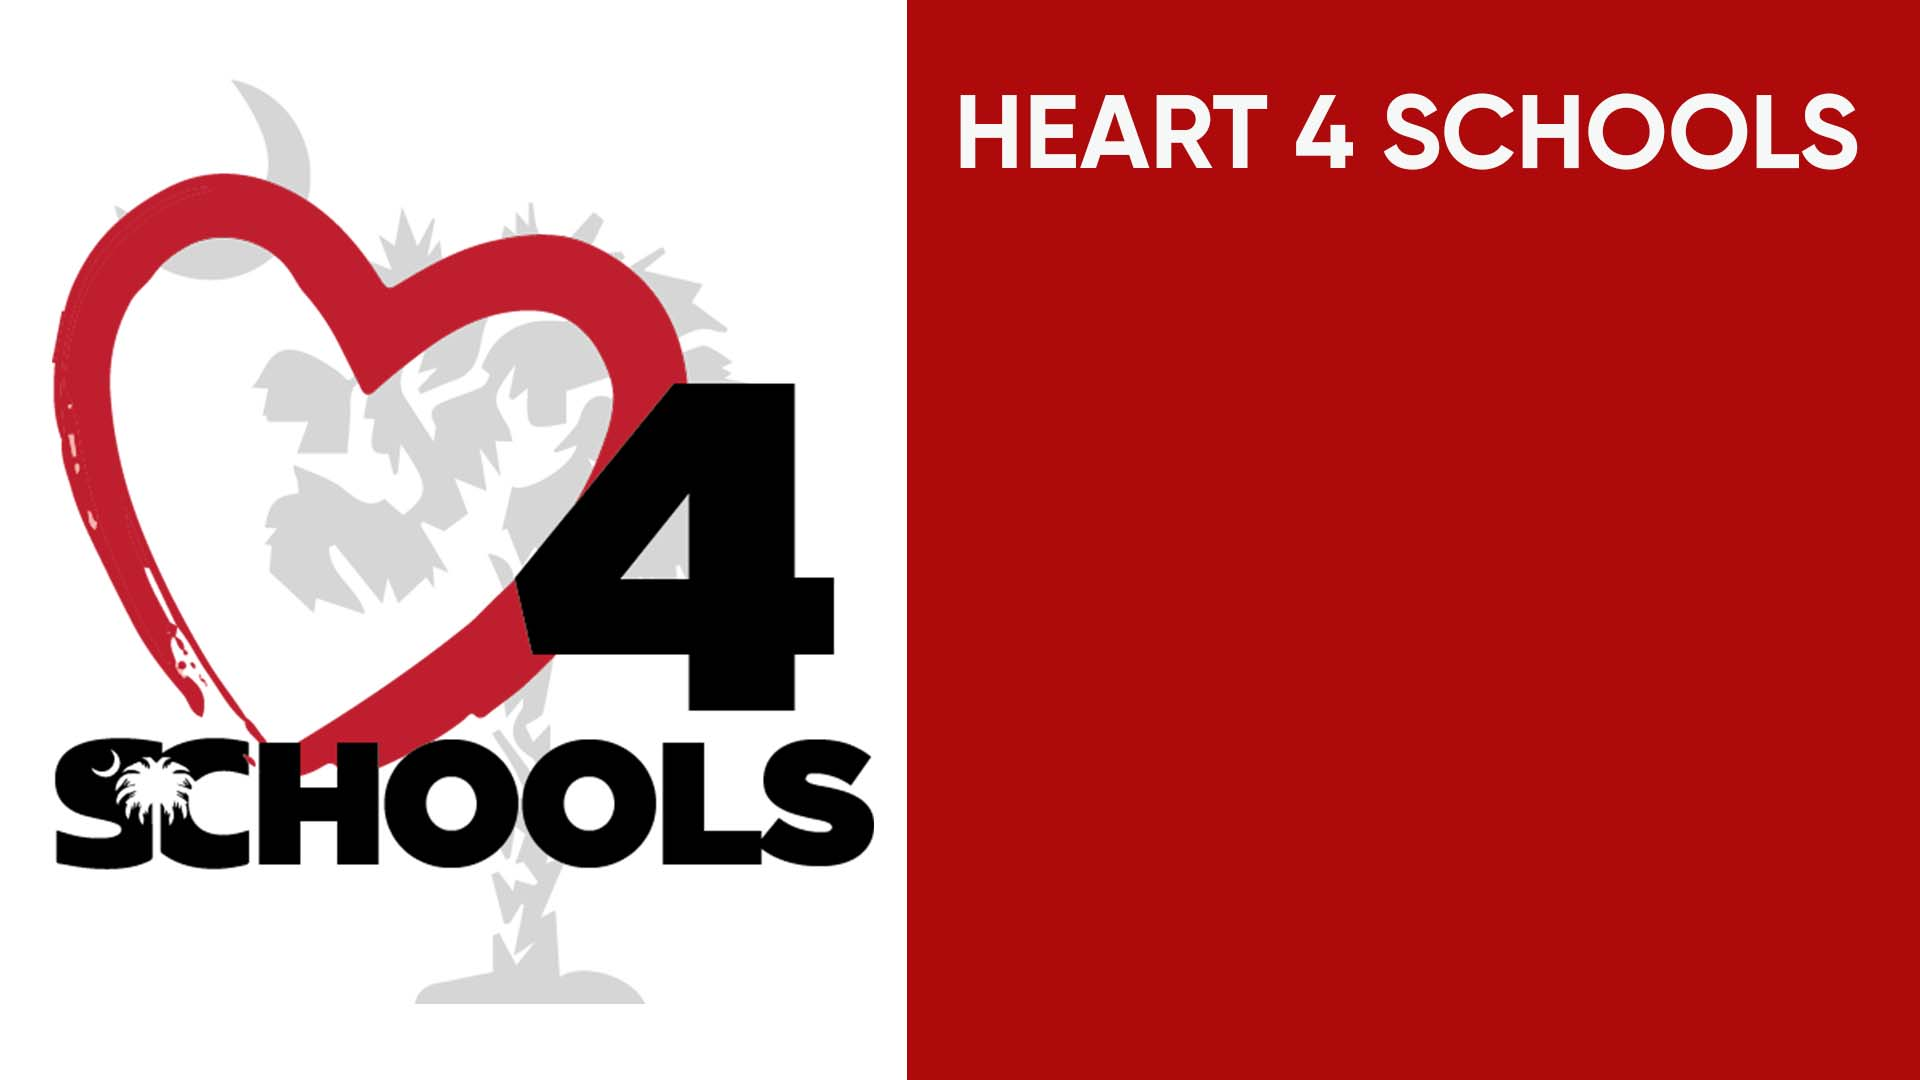 Heart4Schools Mission Project